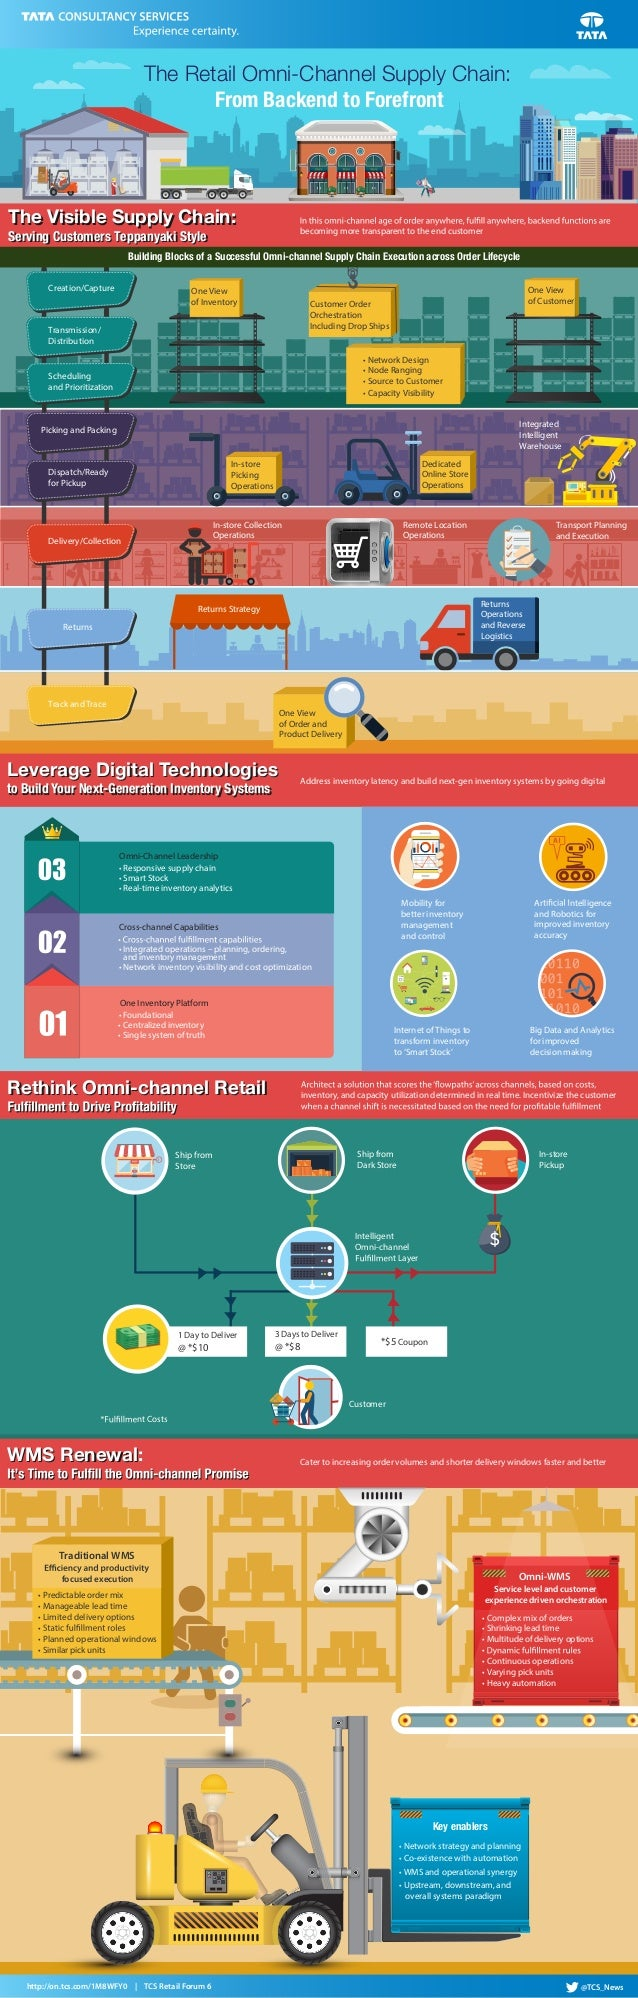 In-store The Retail Omni-Channel Supply Chain: From Backend to Forefront Delivery/Collection Integrated Intelligent Wareho...